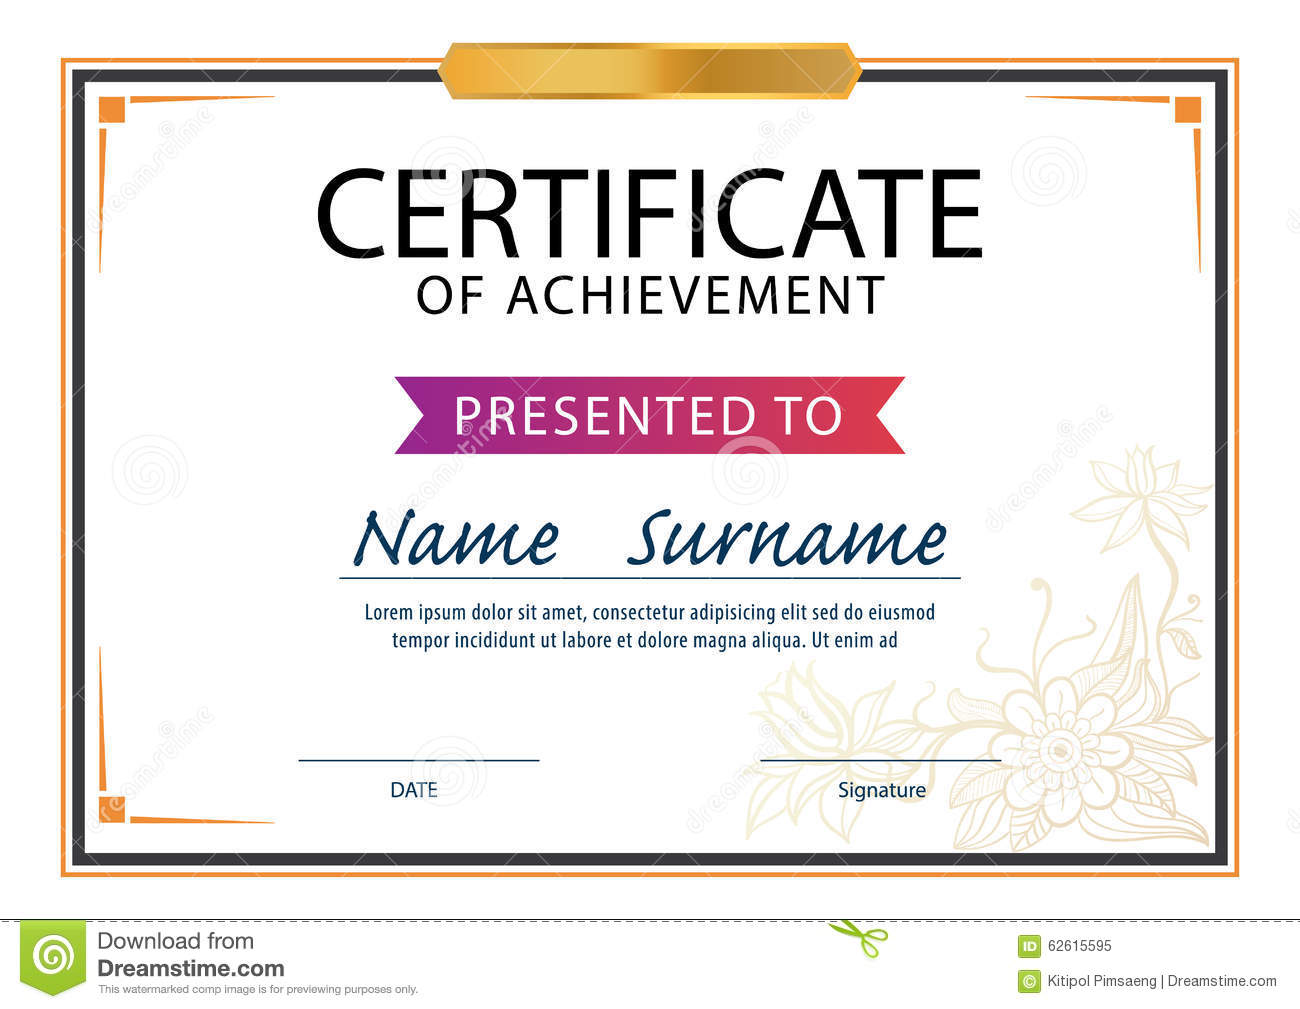 certificate of attainment template - certificate of achievement frame design template layout